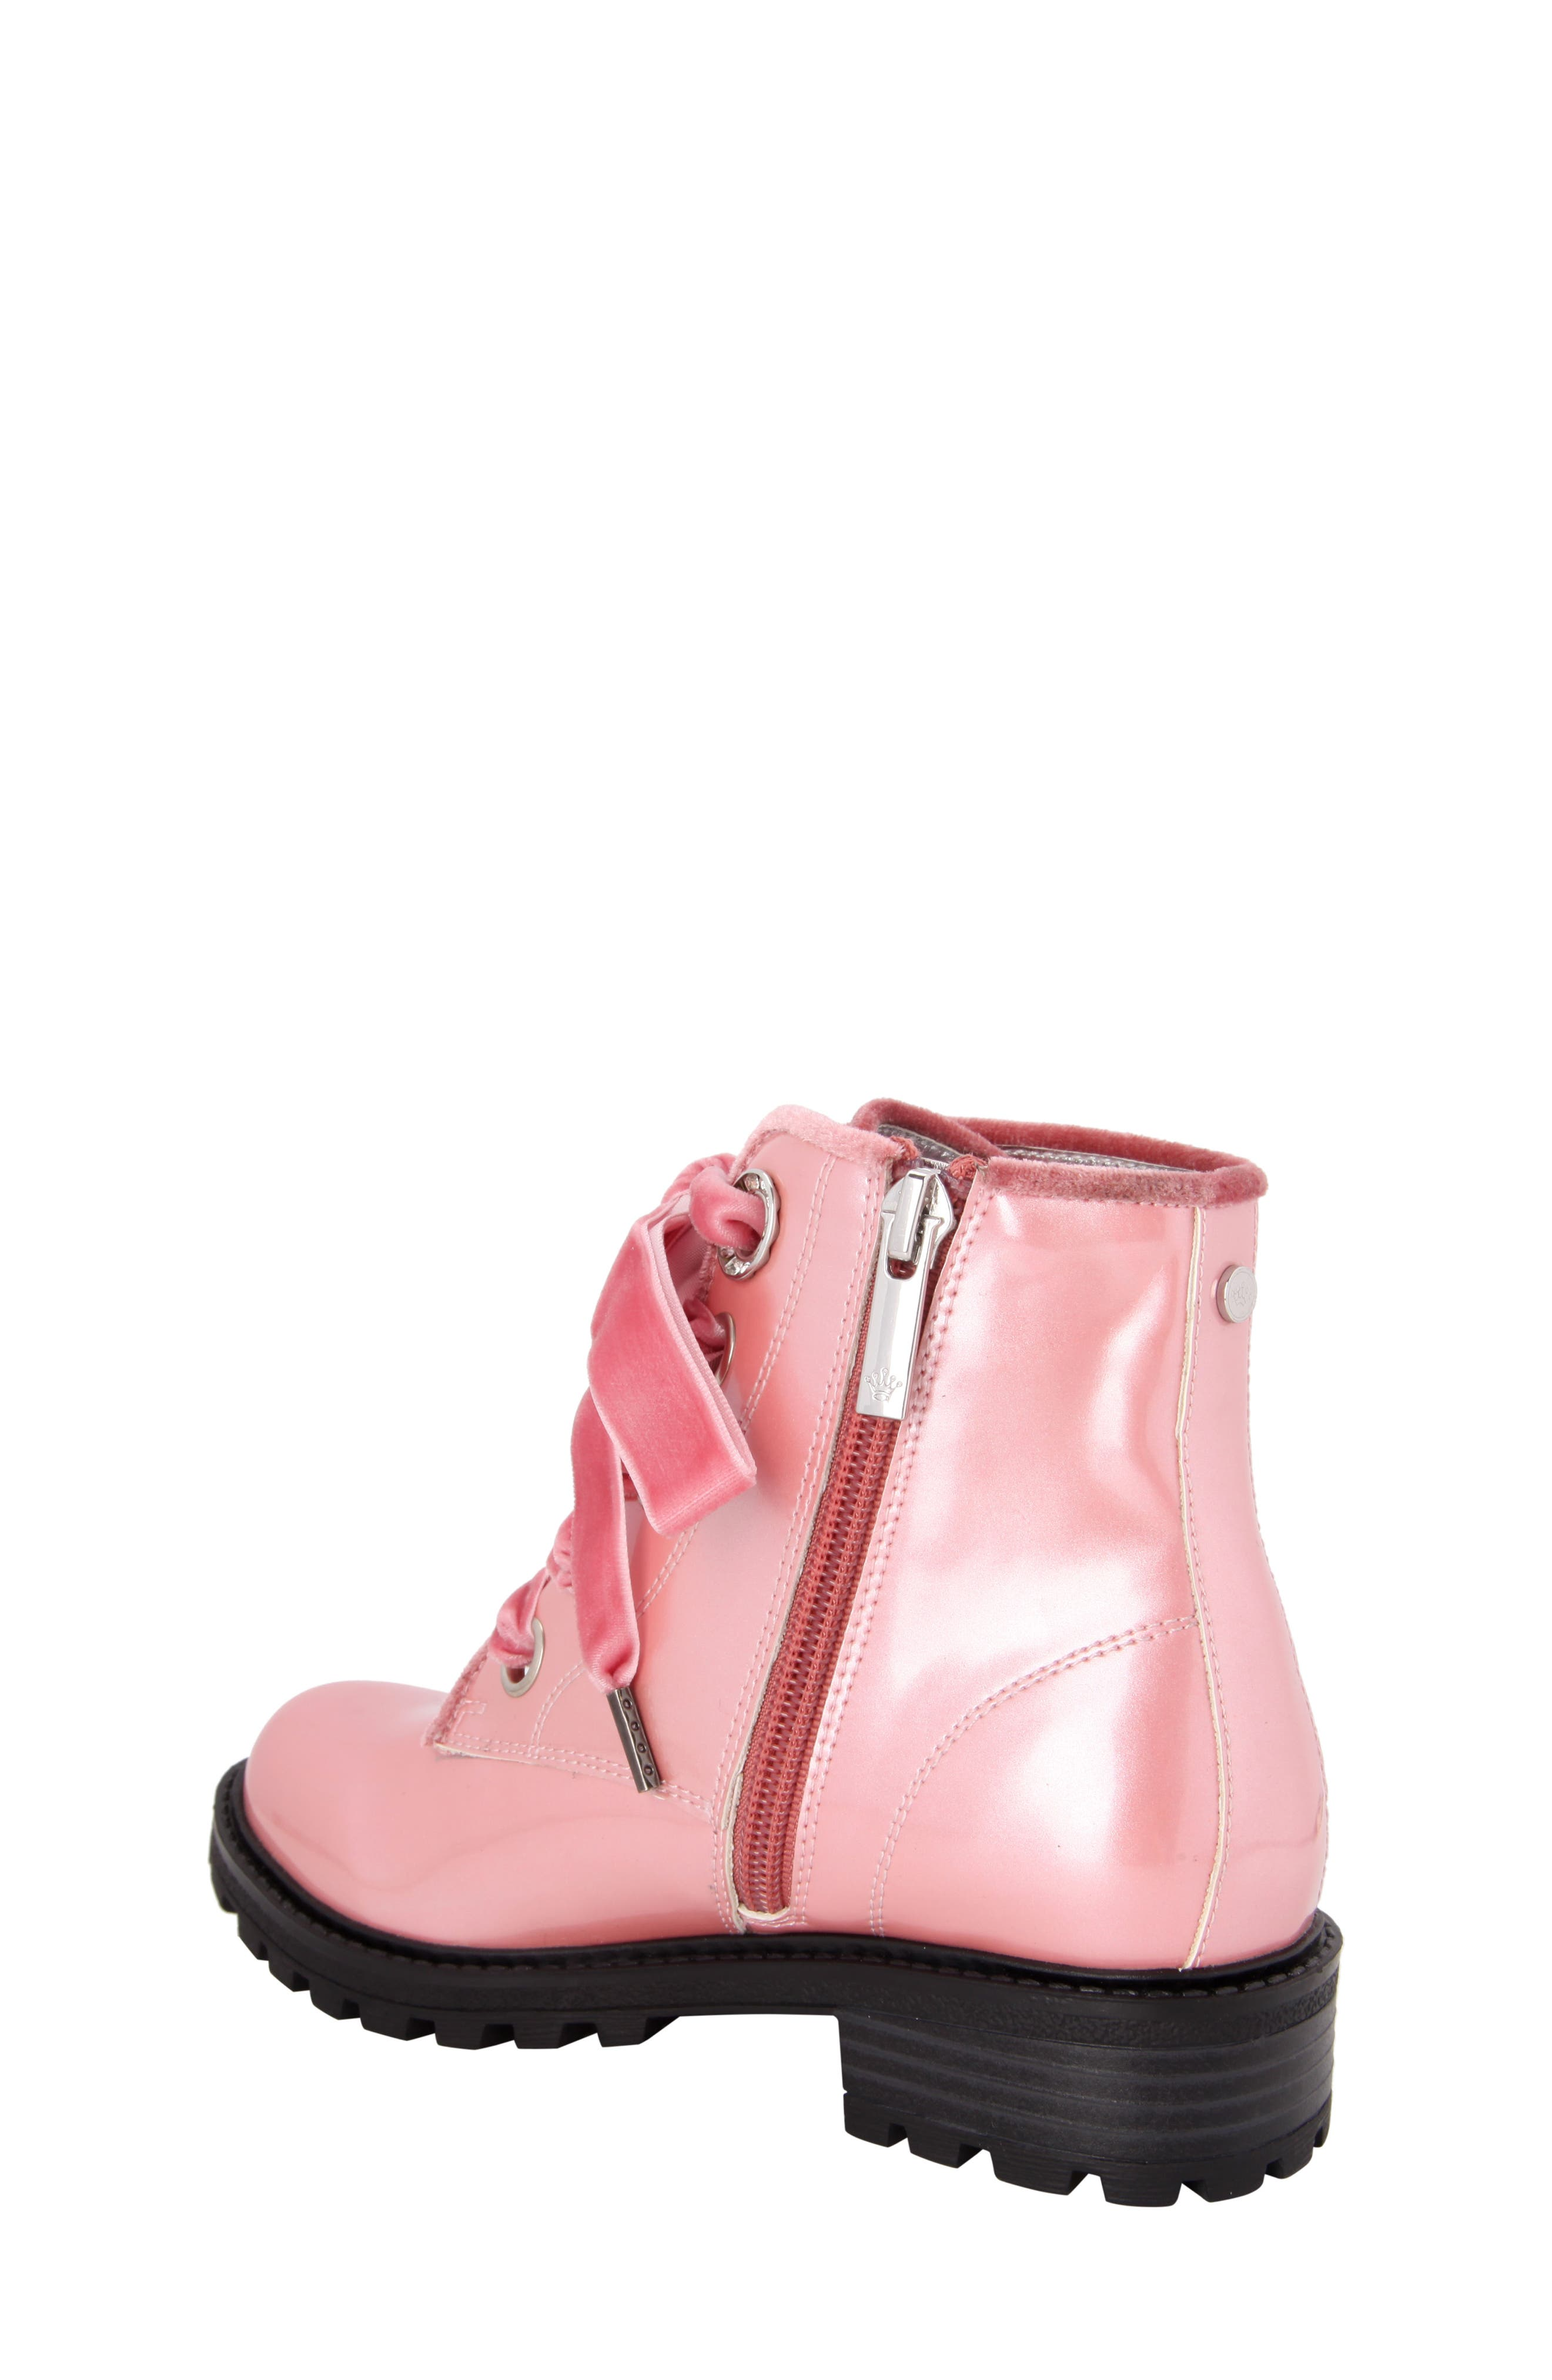 Cherrie Lugged Patent Boot,                             Alternate thumbnail 2, color,                             Blush Faux Patent/ Velvet